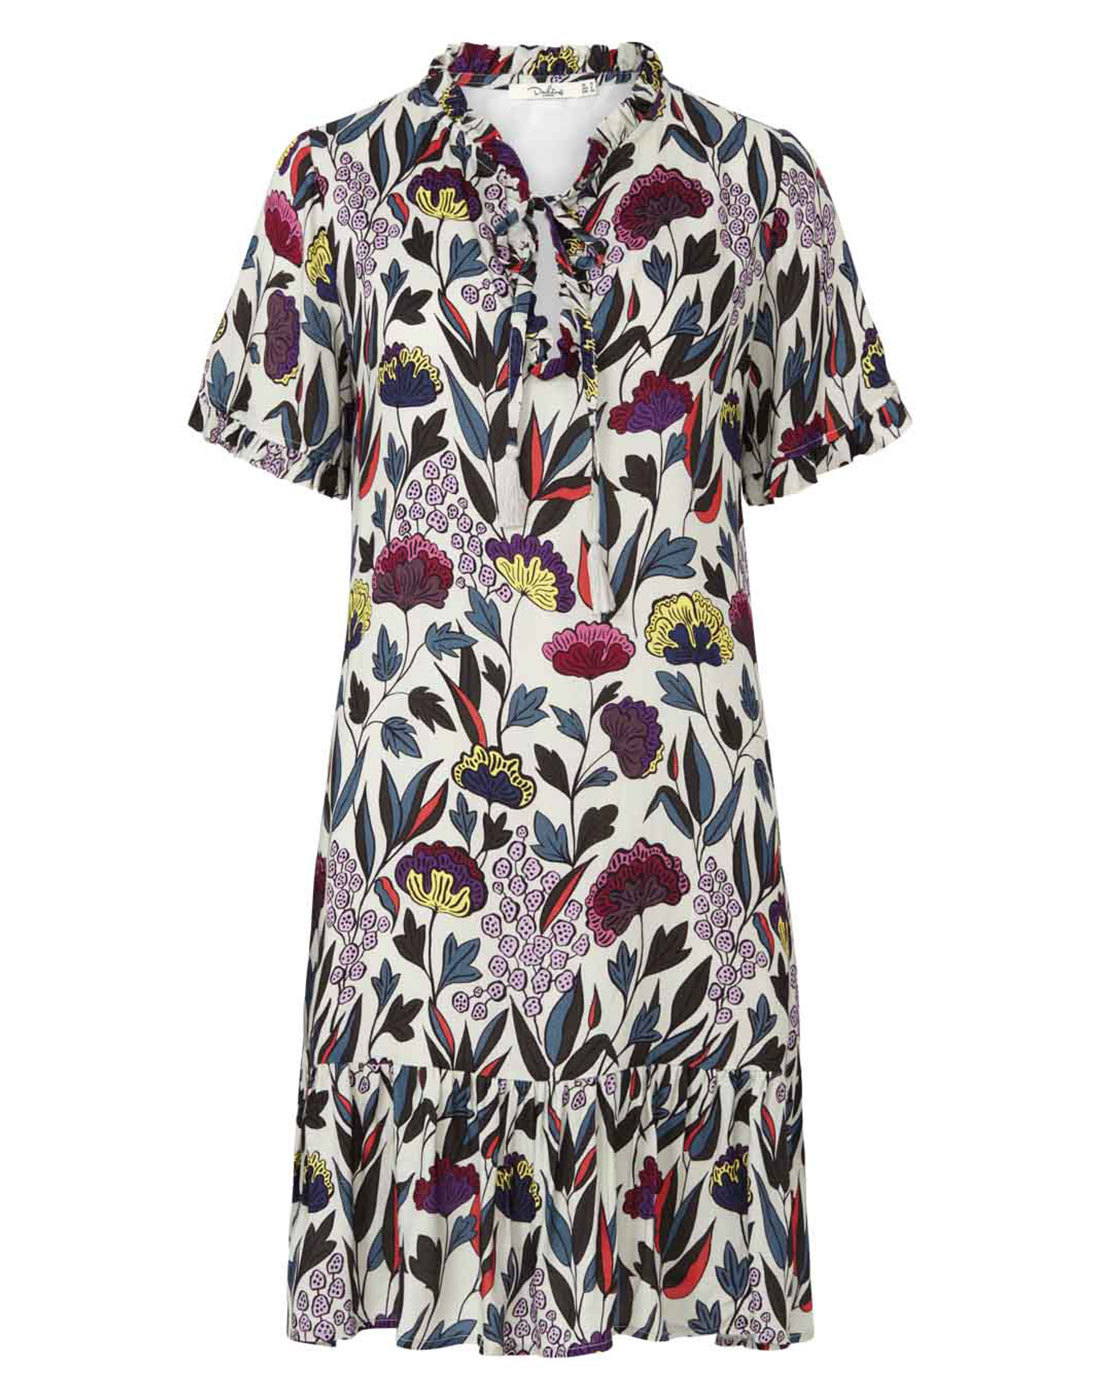 Hilda DARLING Retro Psychedelic Floral Tunic Dress